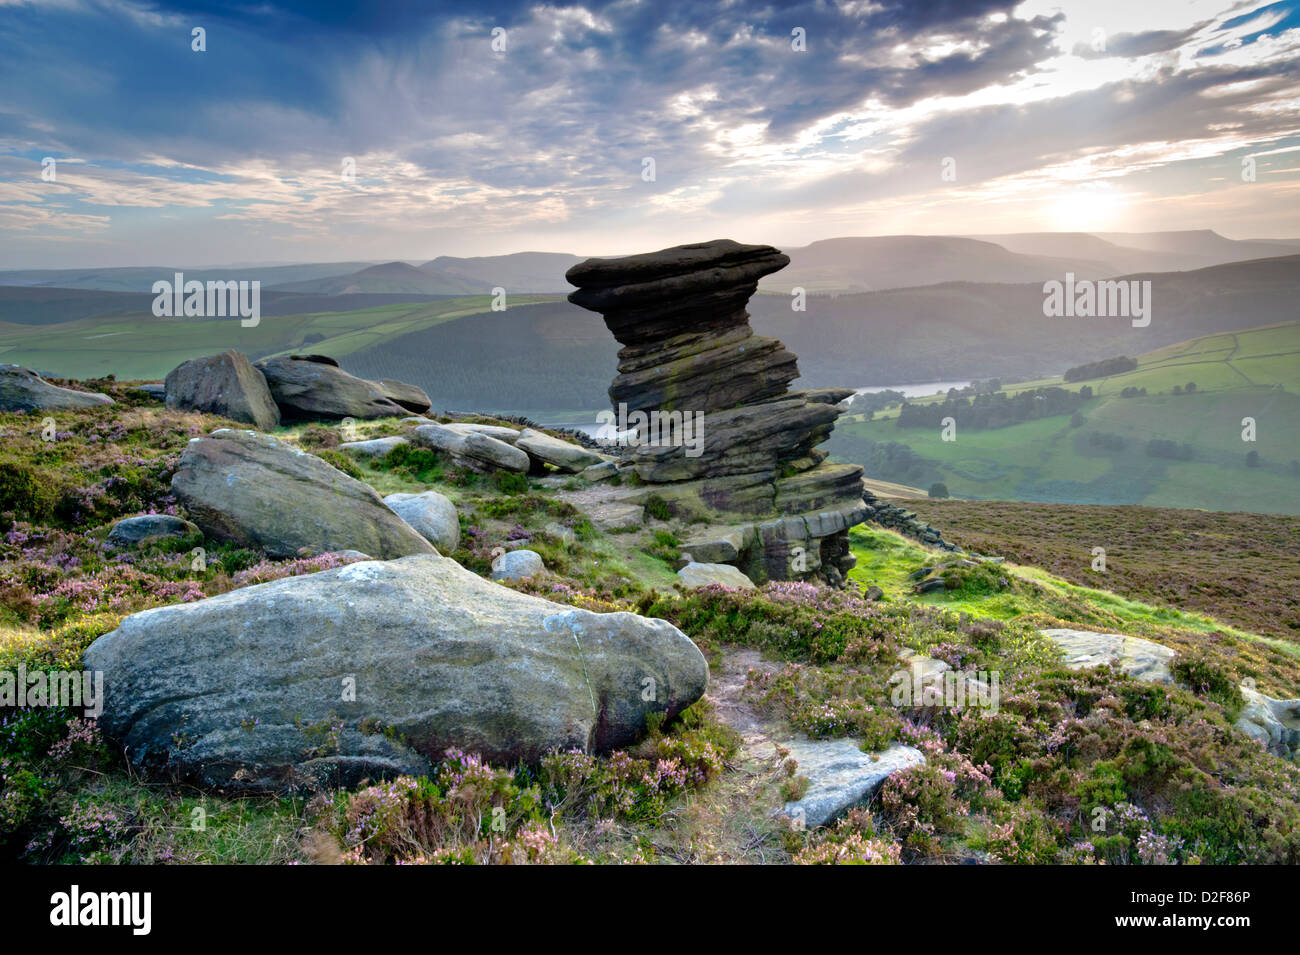 The Salt Cellar, Derwent Edge, Peak District National Park, Derbyshire, England, UK - Stock Image